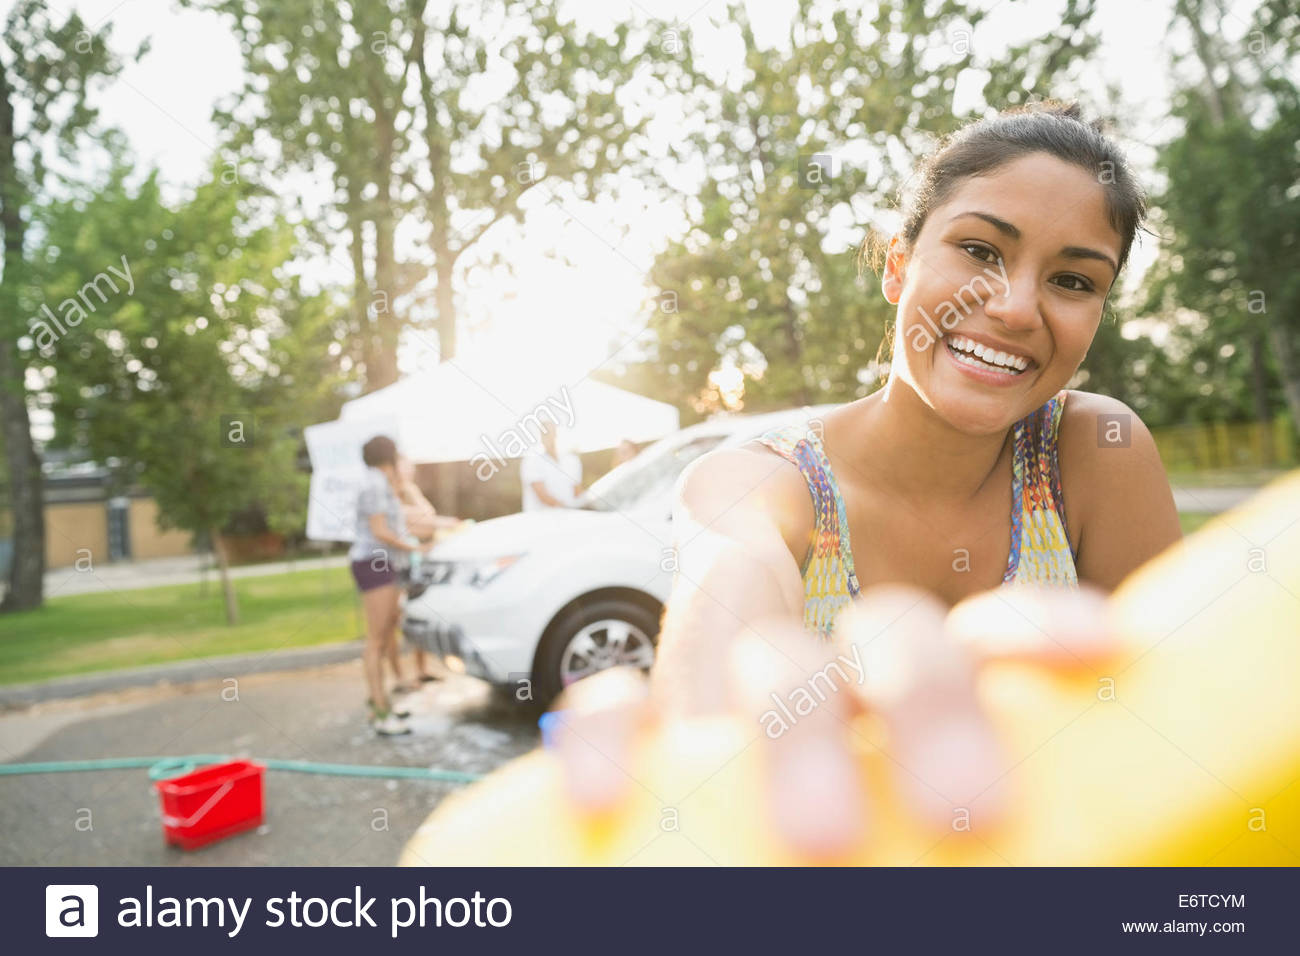 Portrait of smiling woman at car wash - Stock Image